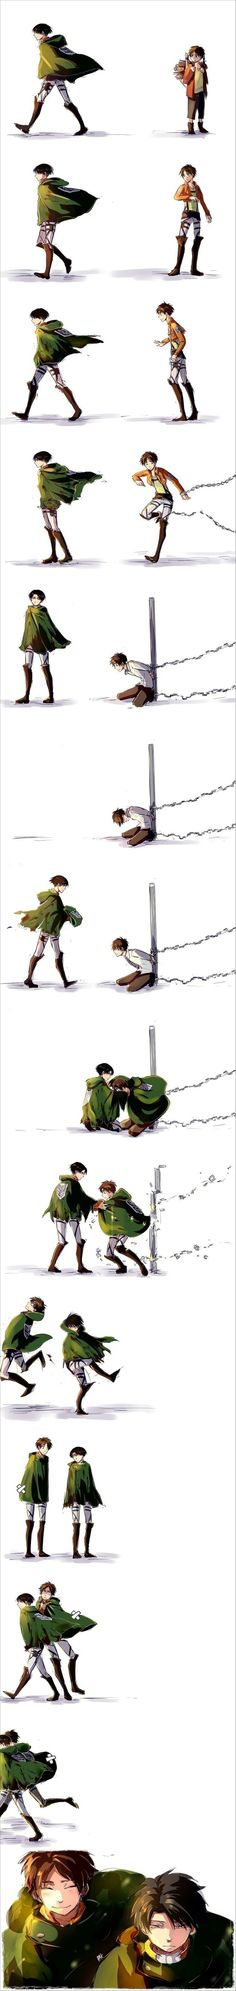 If you see it carefully Levi's Cloak got bloodier